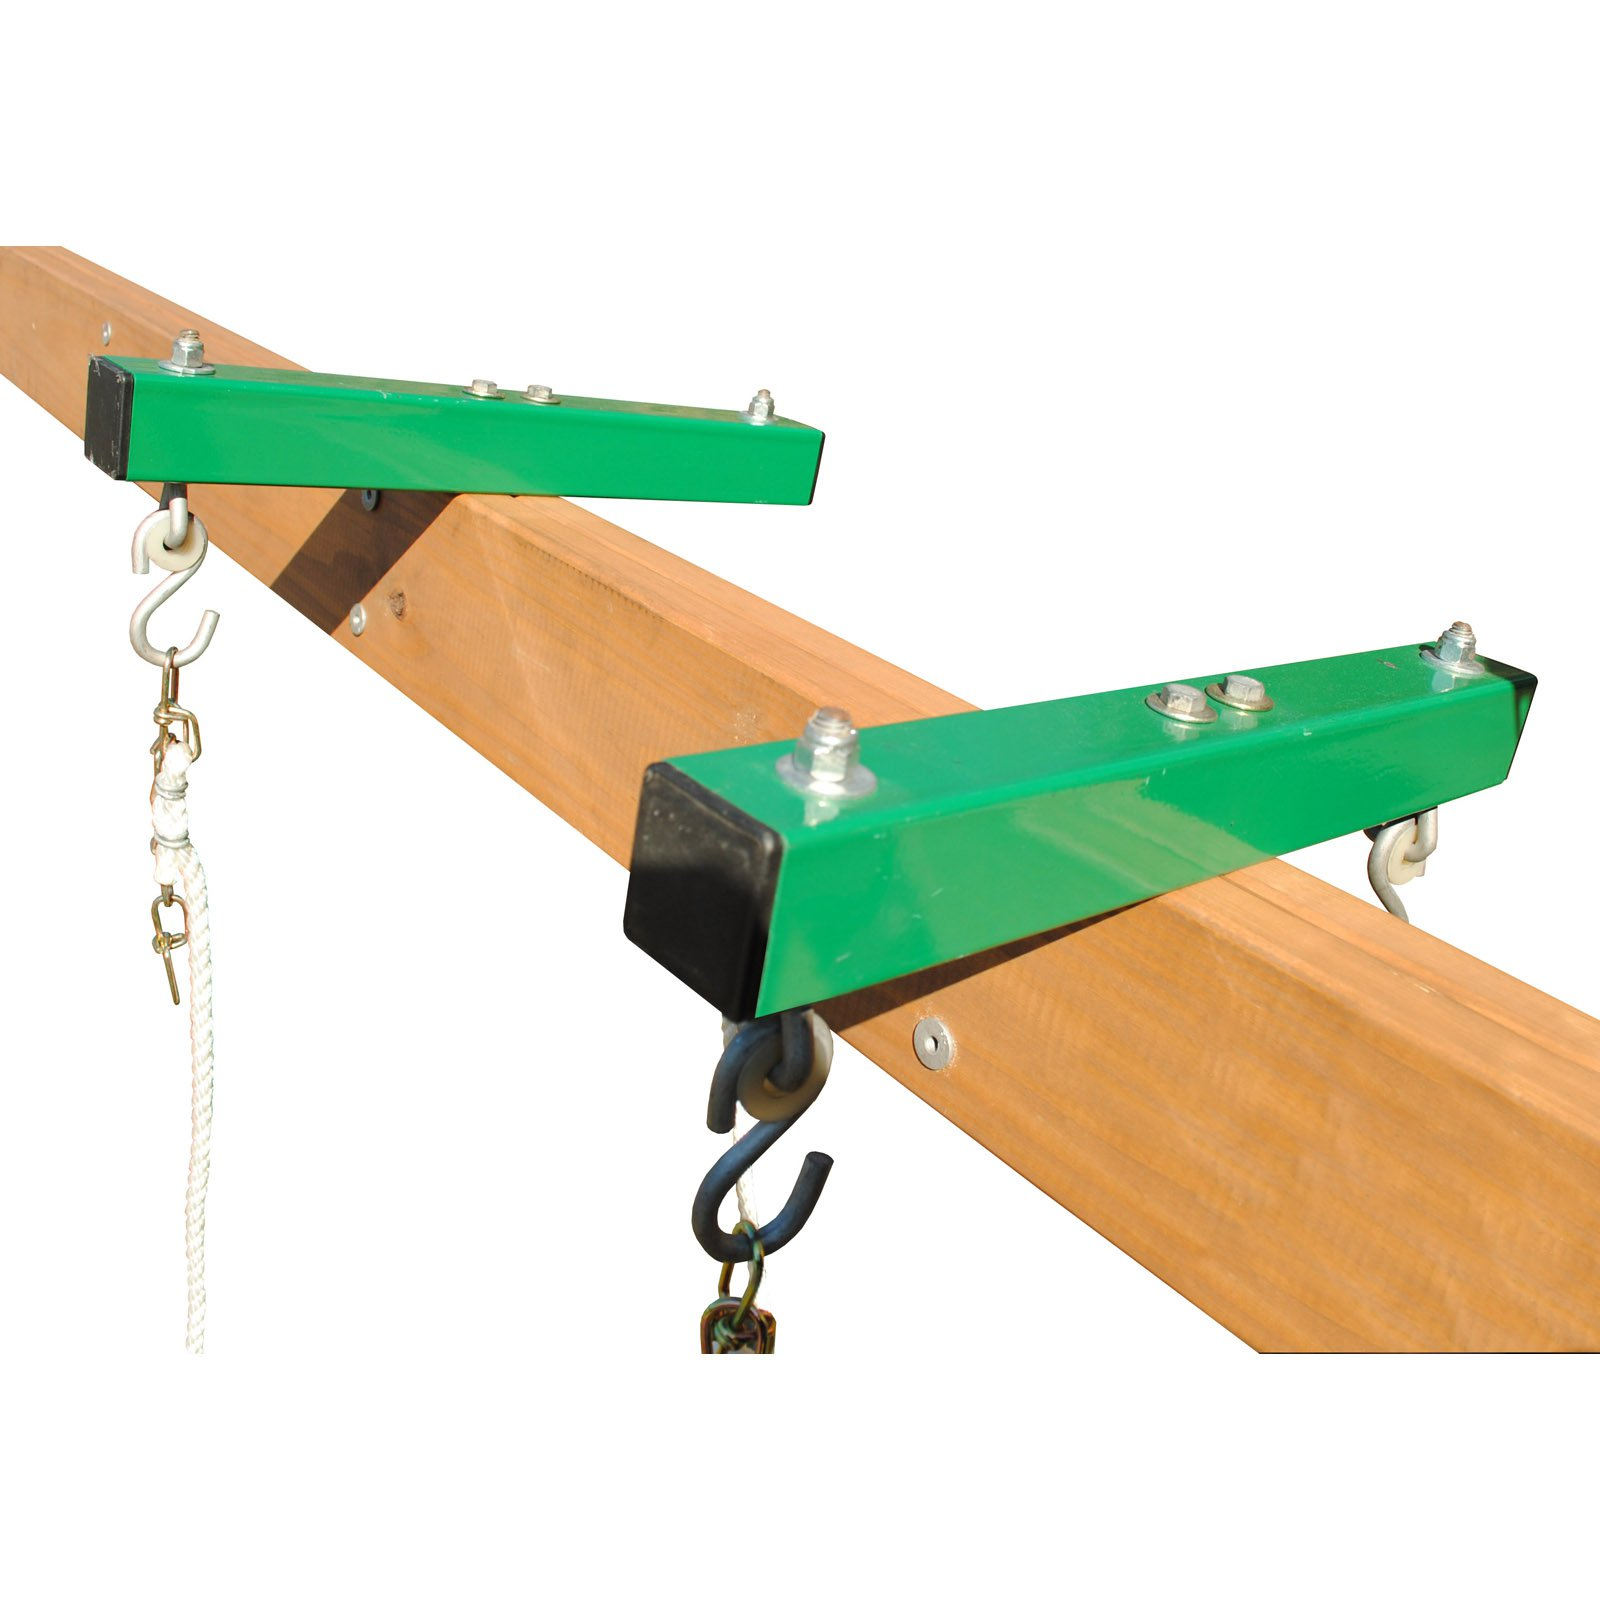 Creative Playthings Playtime Back to Back Glider Brackets - 2 Pack